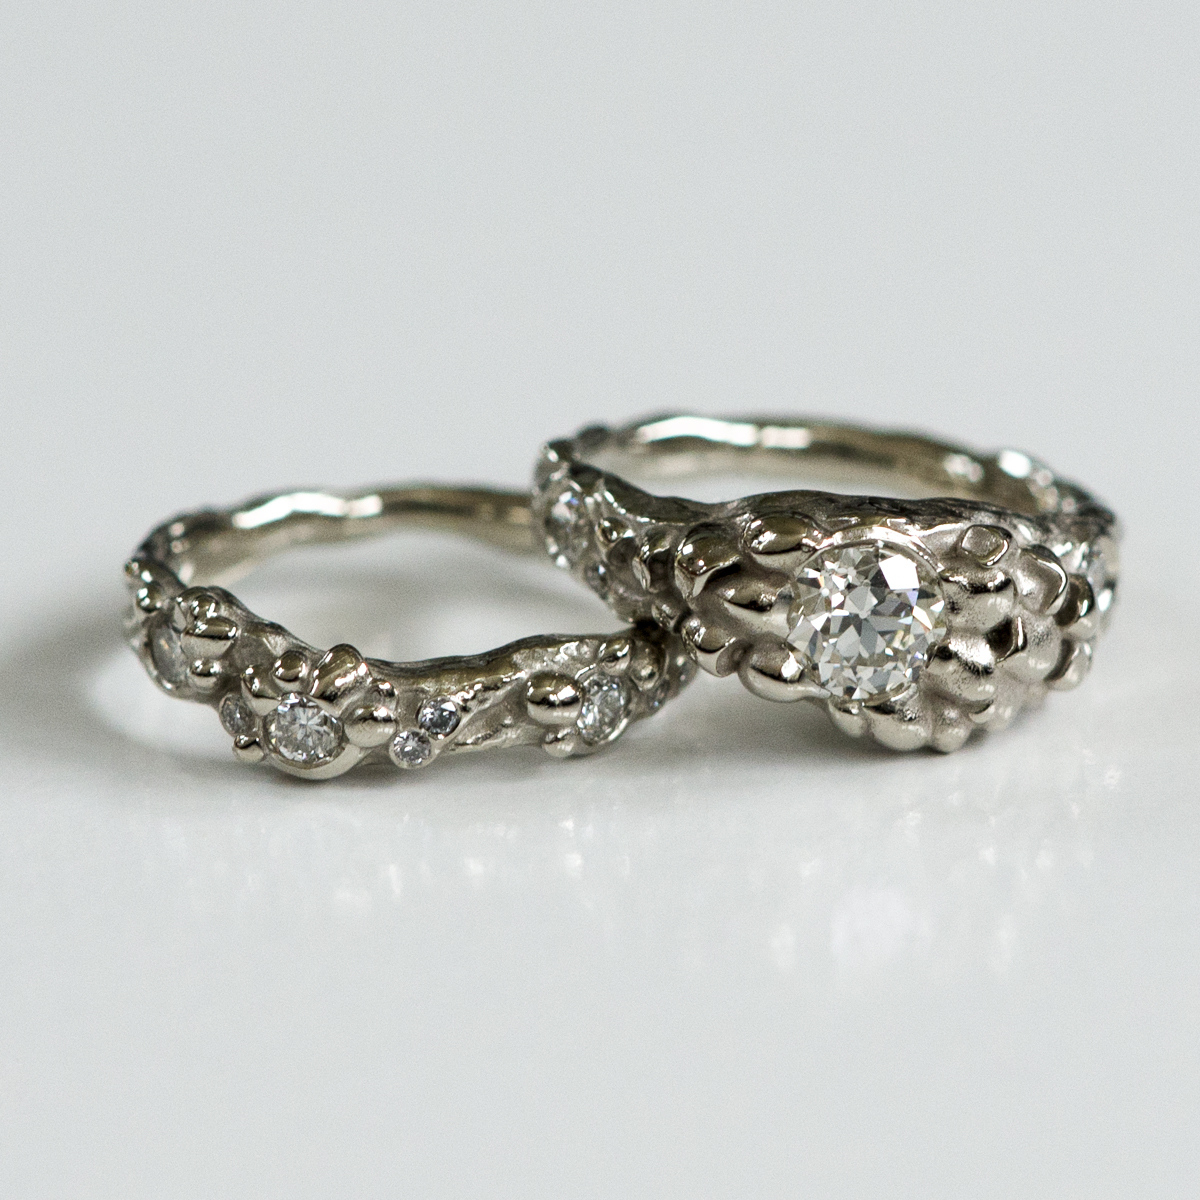 CG-grisez-wedding ring set-mushroom-rock-diamond